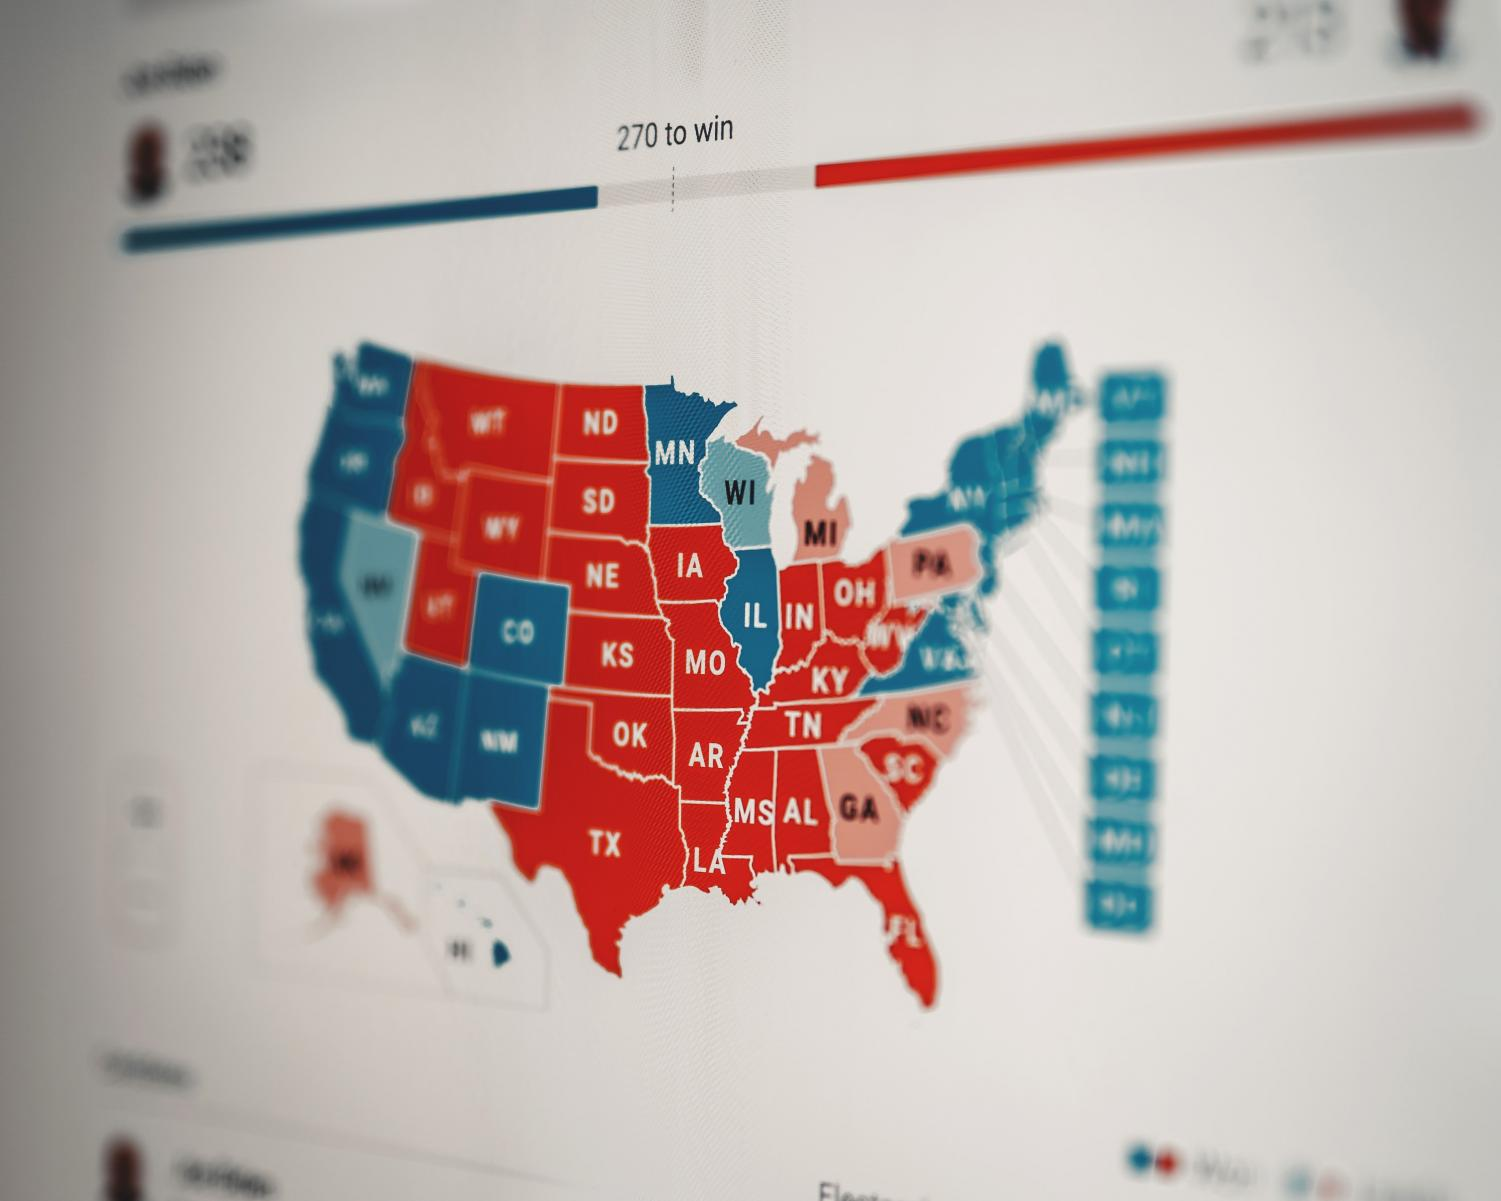 Many Americans were tracking the results live at home through various interactive maps available online. (Image courtesy of Clay Banks at unsplash.com)